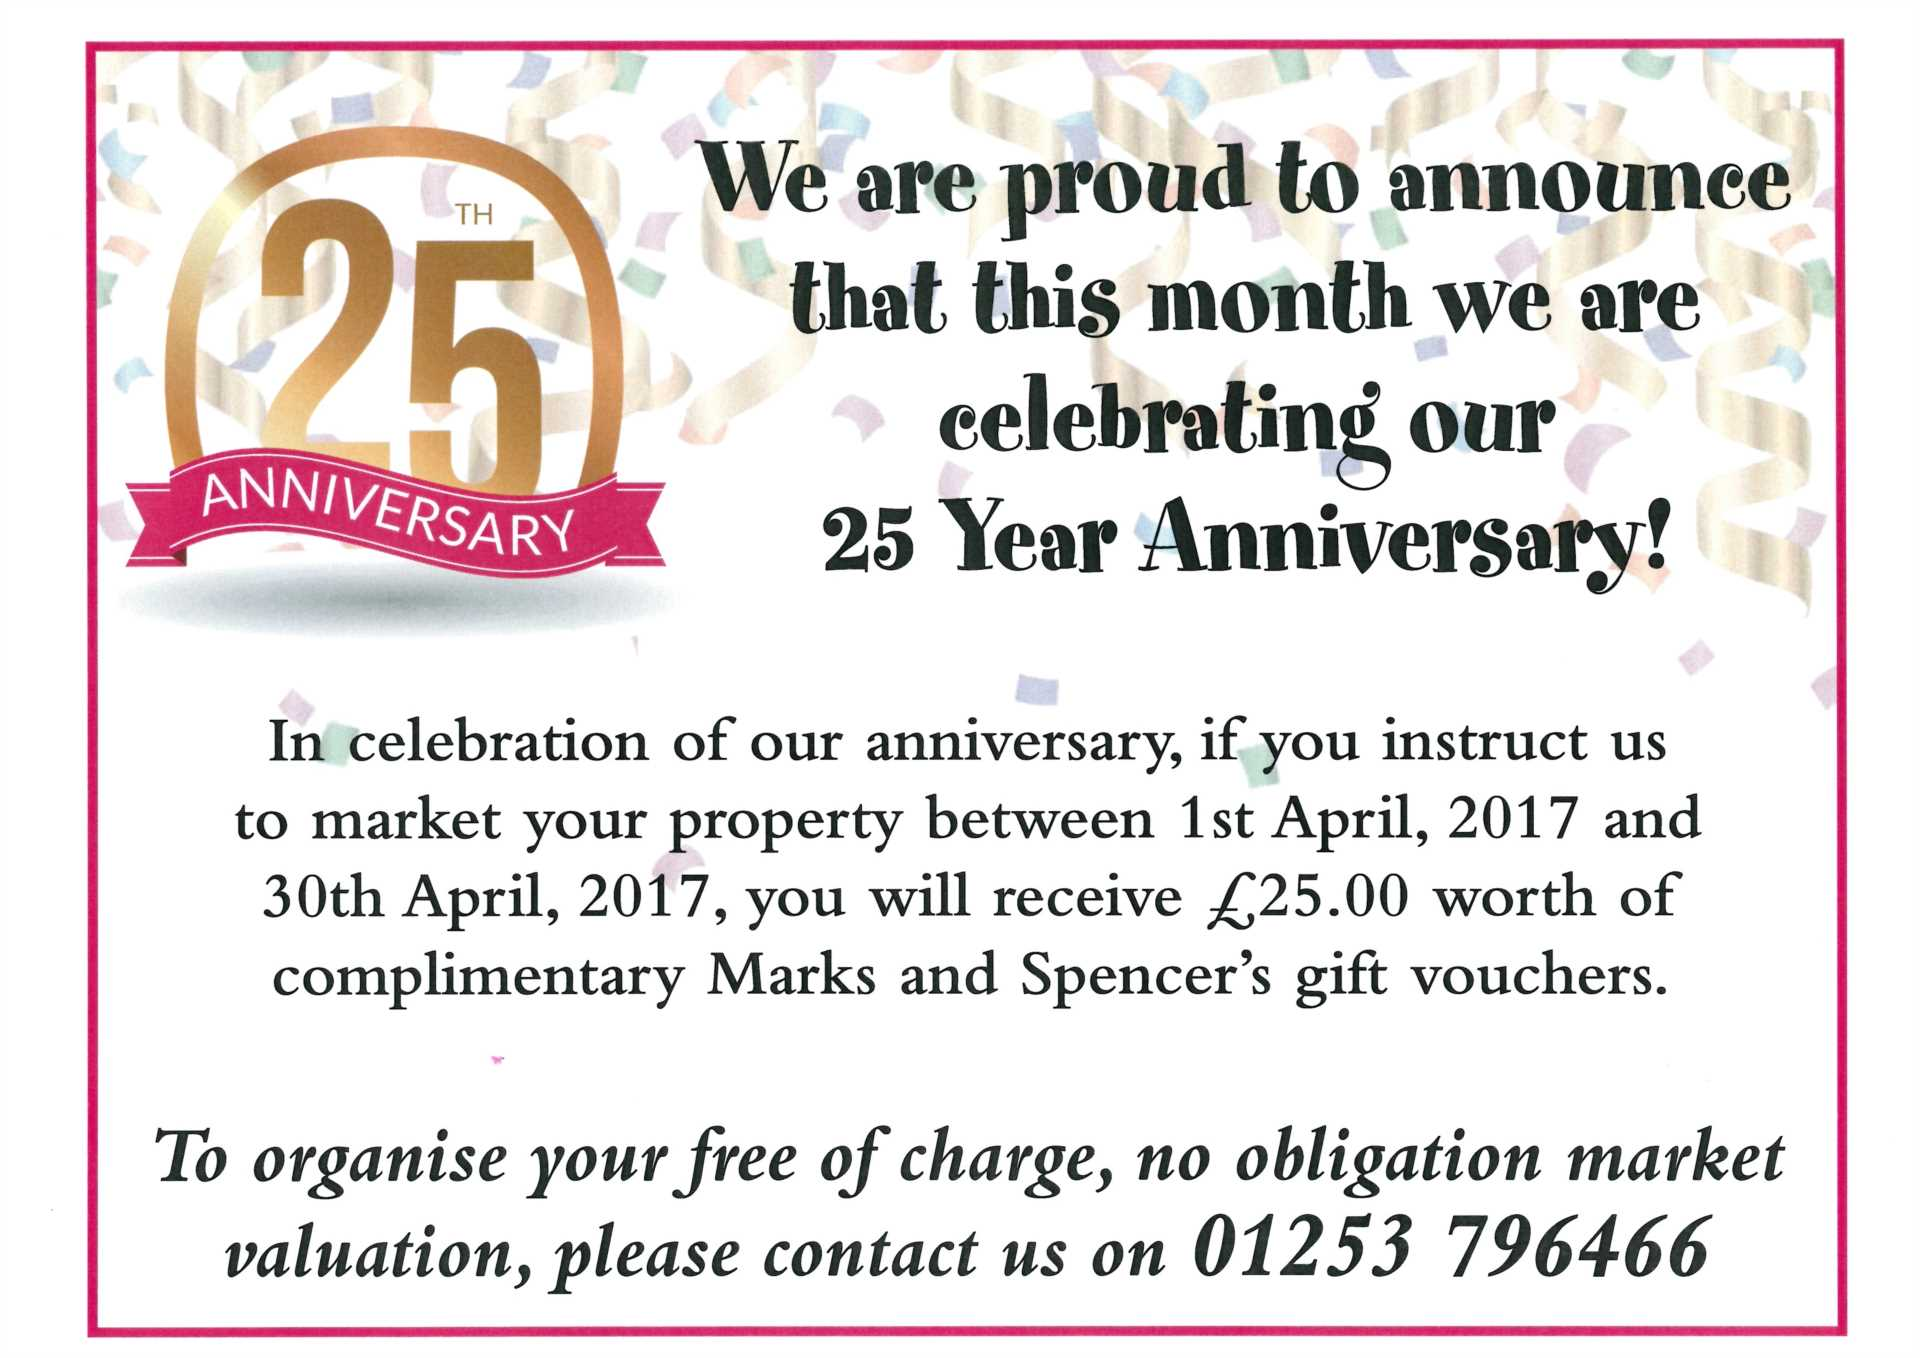 DUNDERDALE ASQUITH ARE PLEASED TO ANNOUNCE OUR 25 YEAR ANNIVERSARY THIS MONTH!